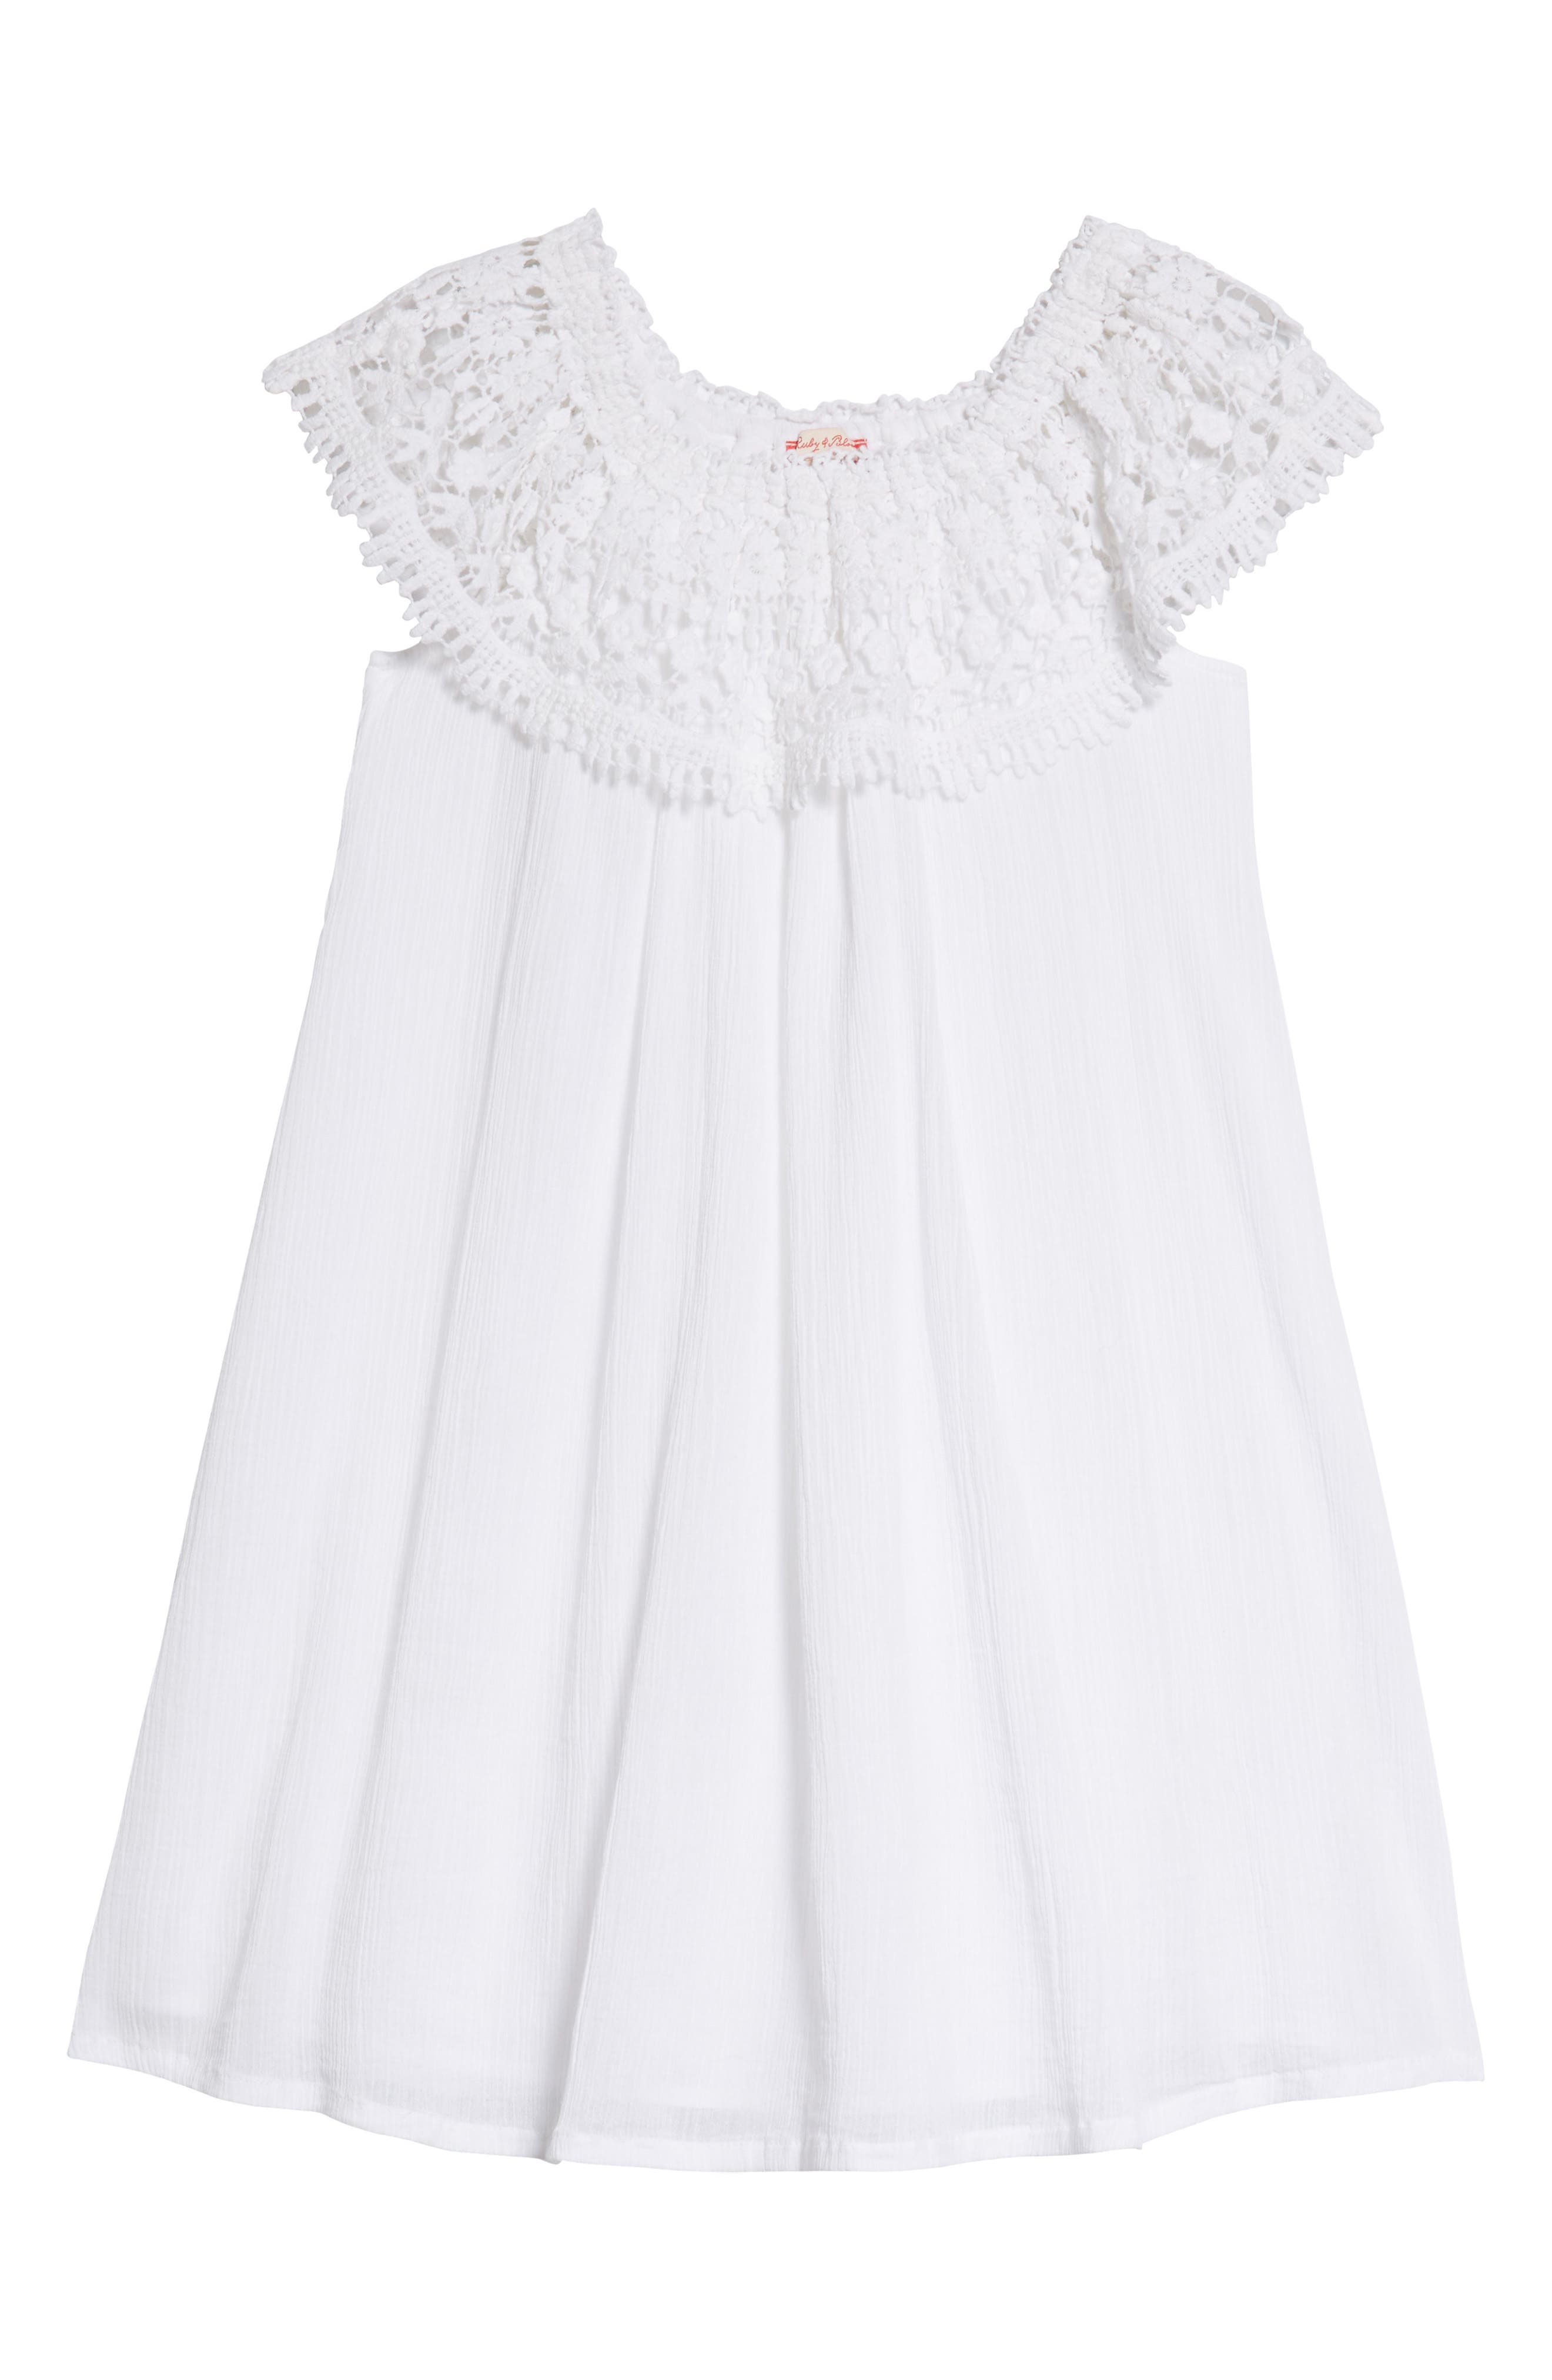 Ruby & Bloom Lace Swing Dress (Toddler Girls, Little Girls & Big Girls)